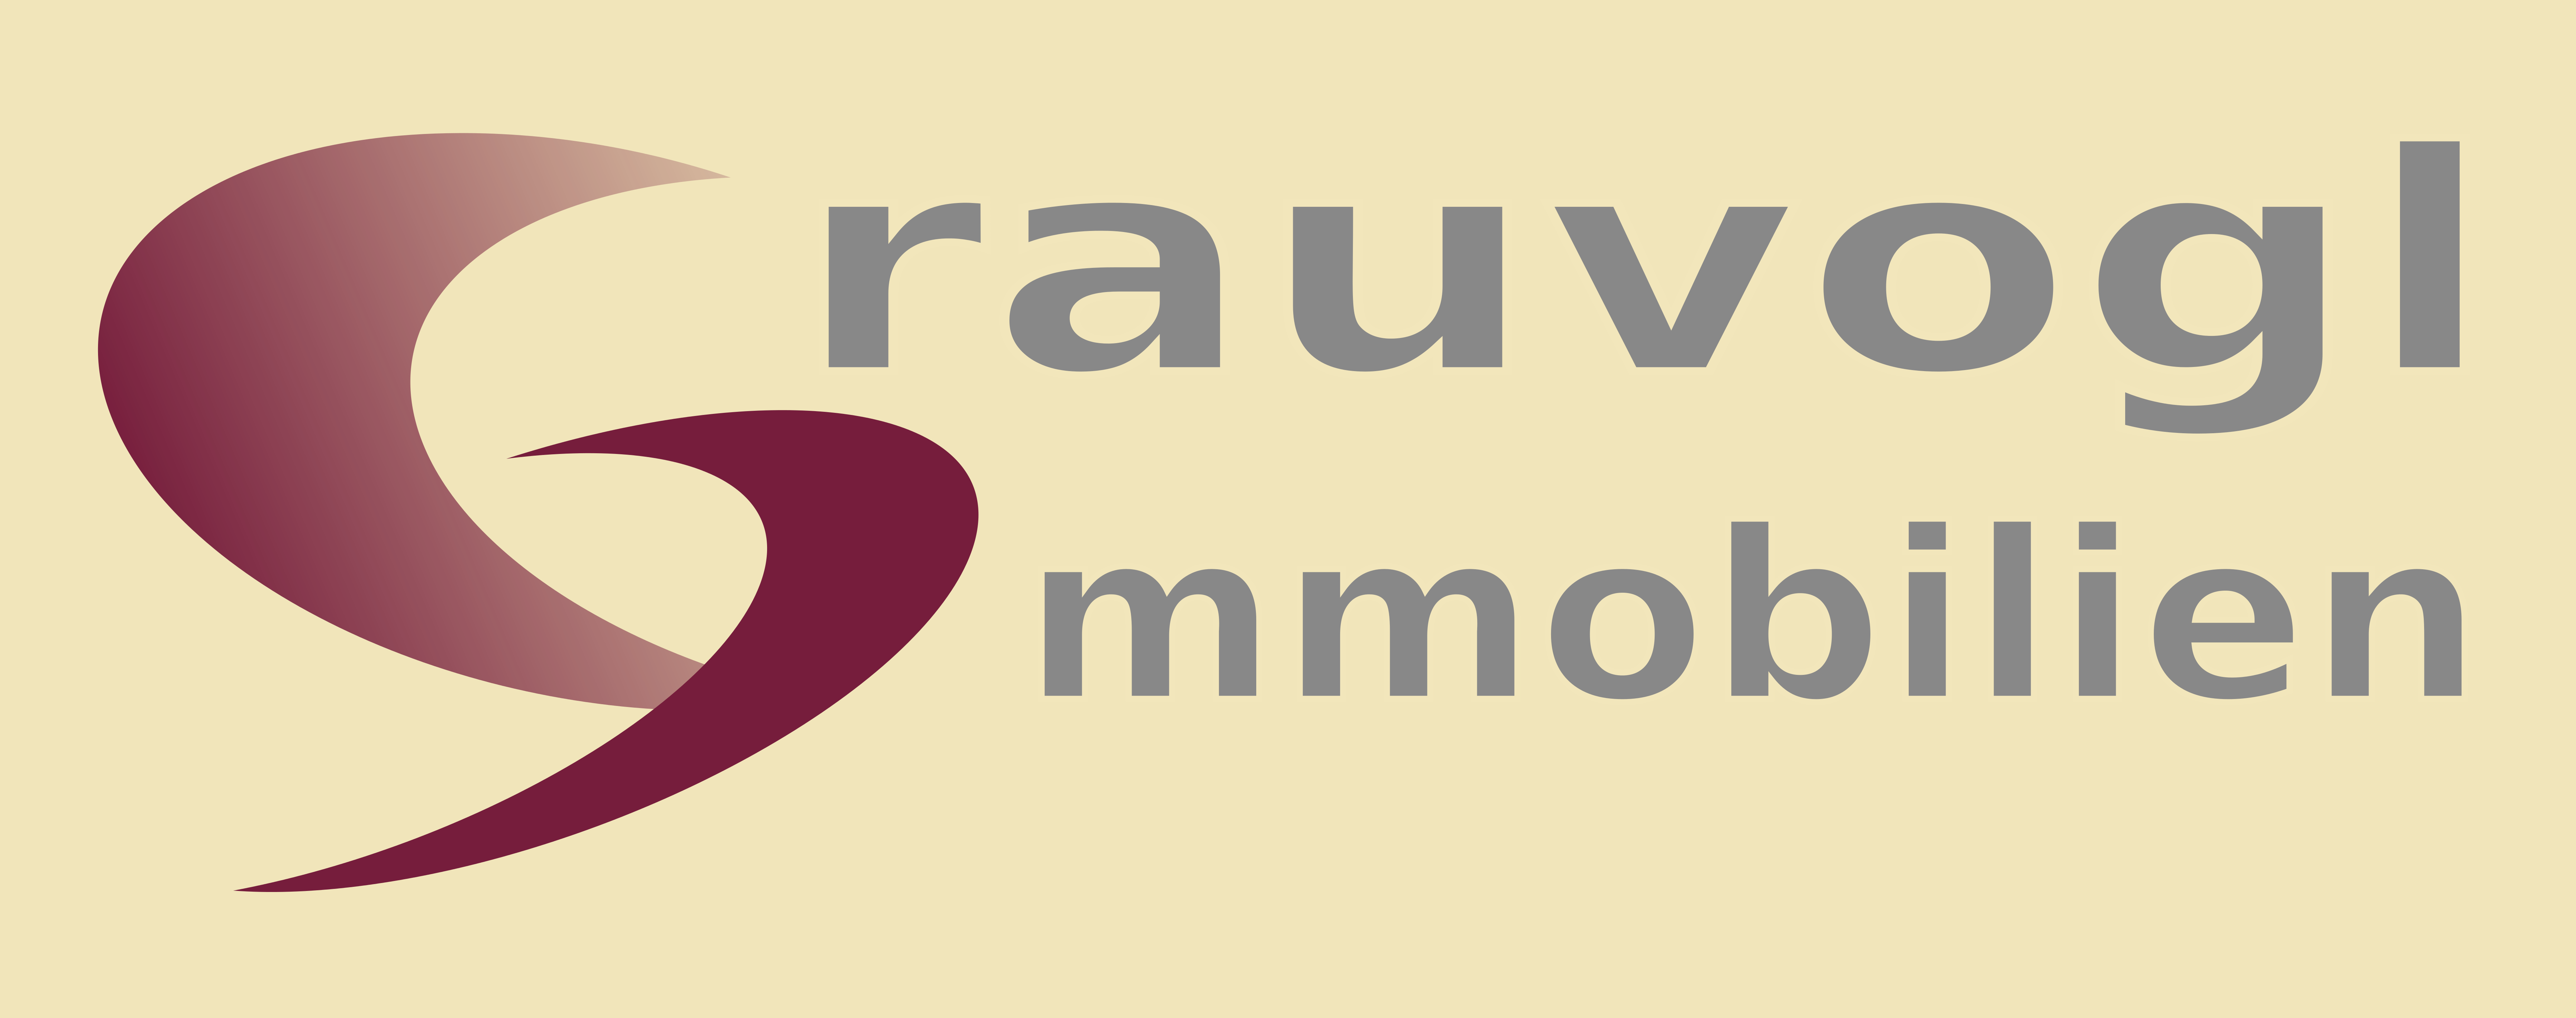 Grauvogl Immobilien